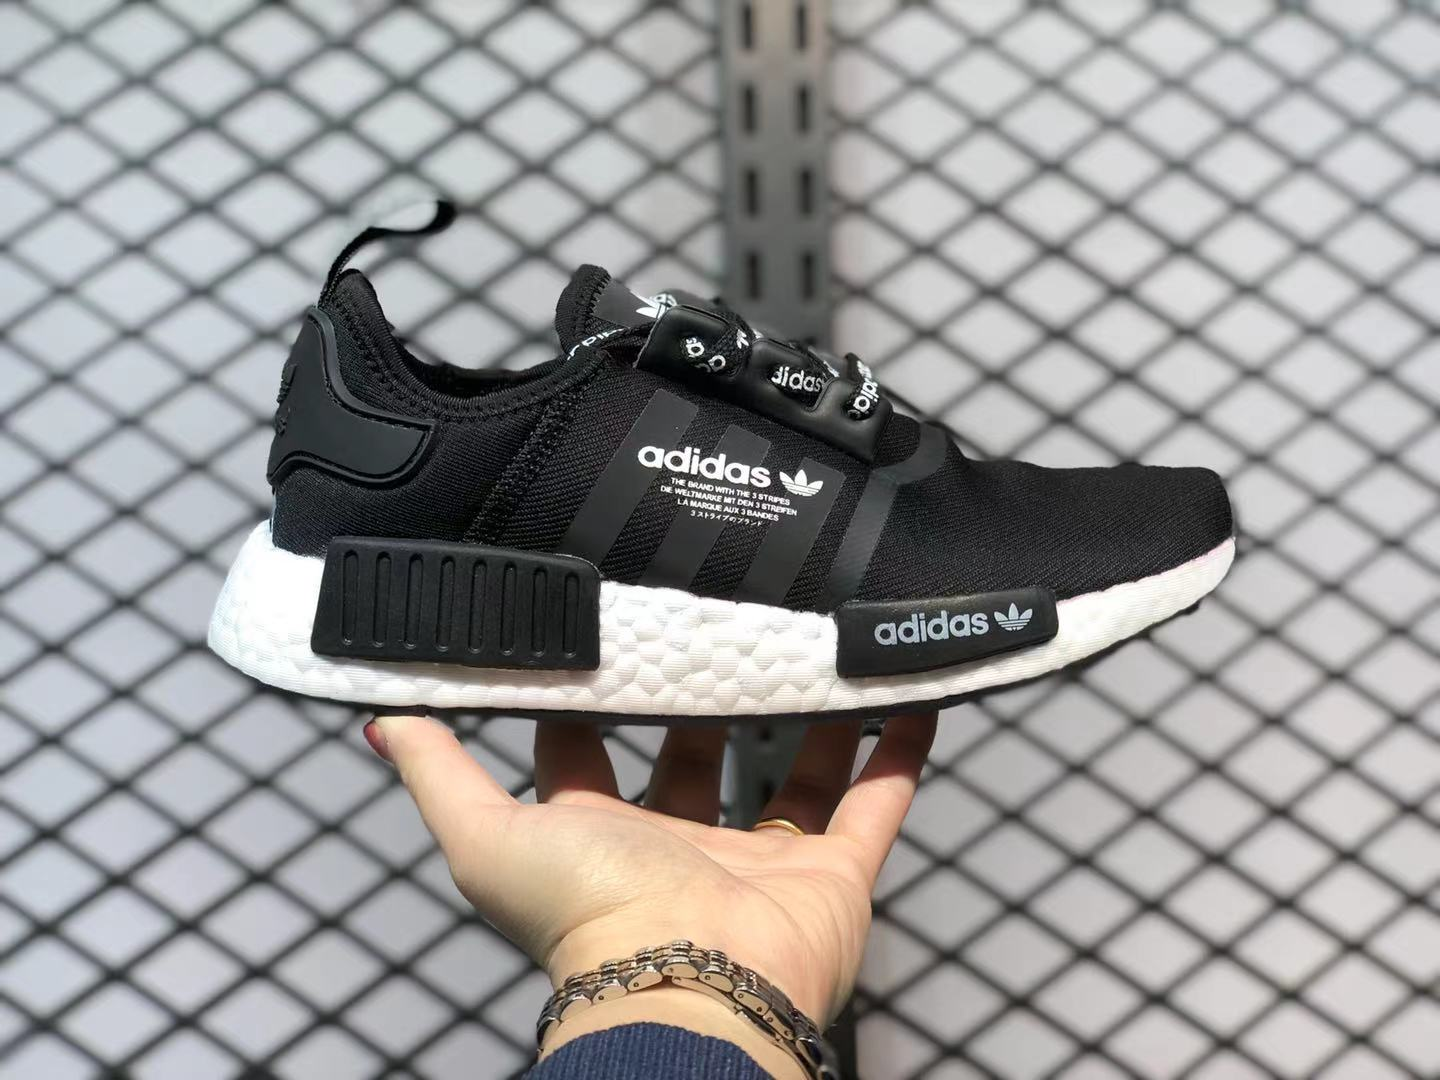 Adidas NMD R1 Core Black/Core Black-Ftwr White Running Shoes F99711